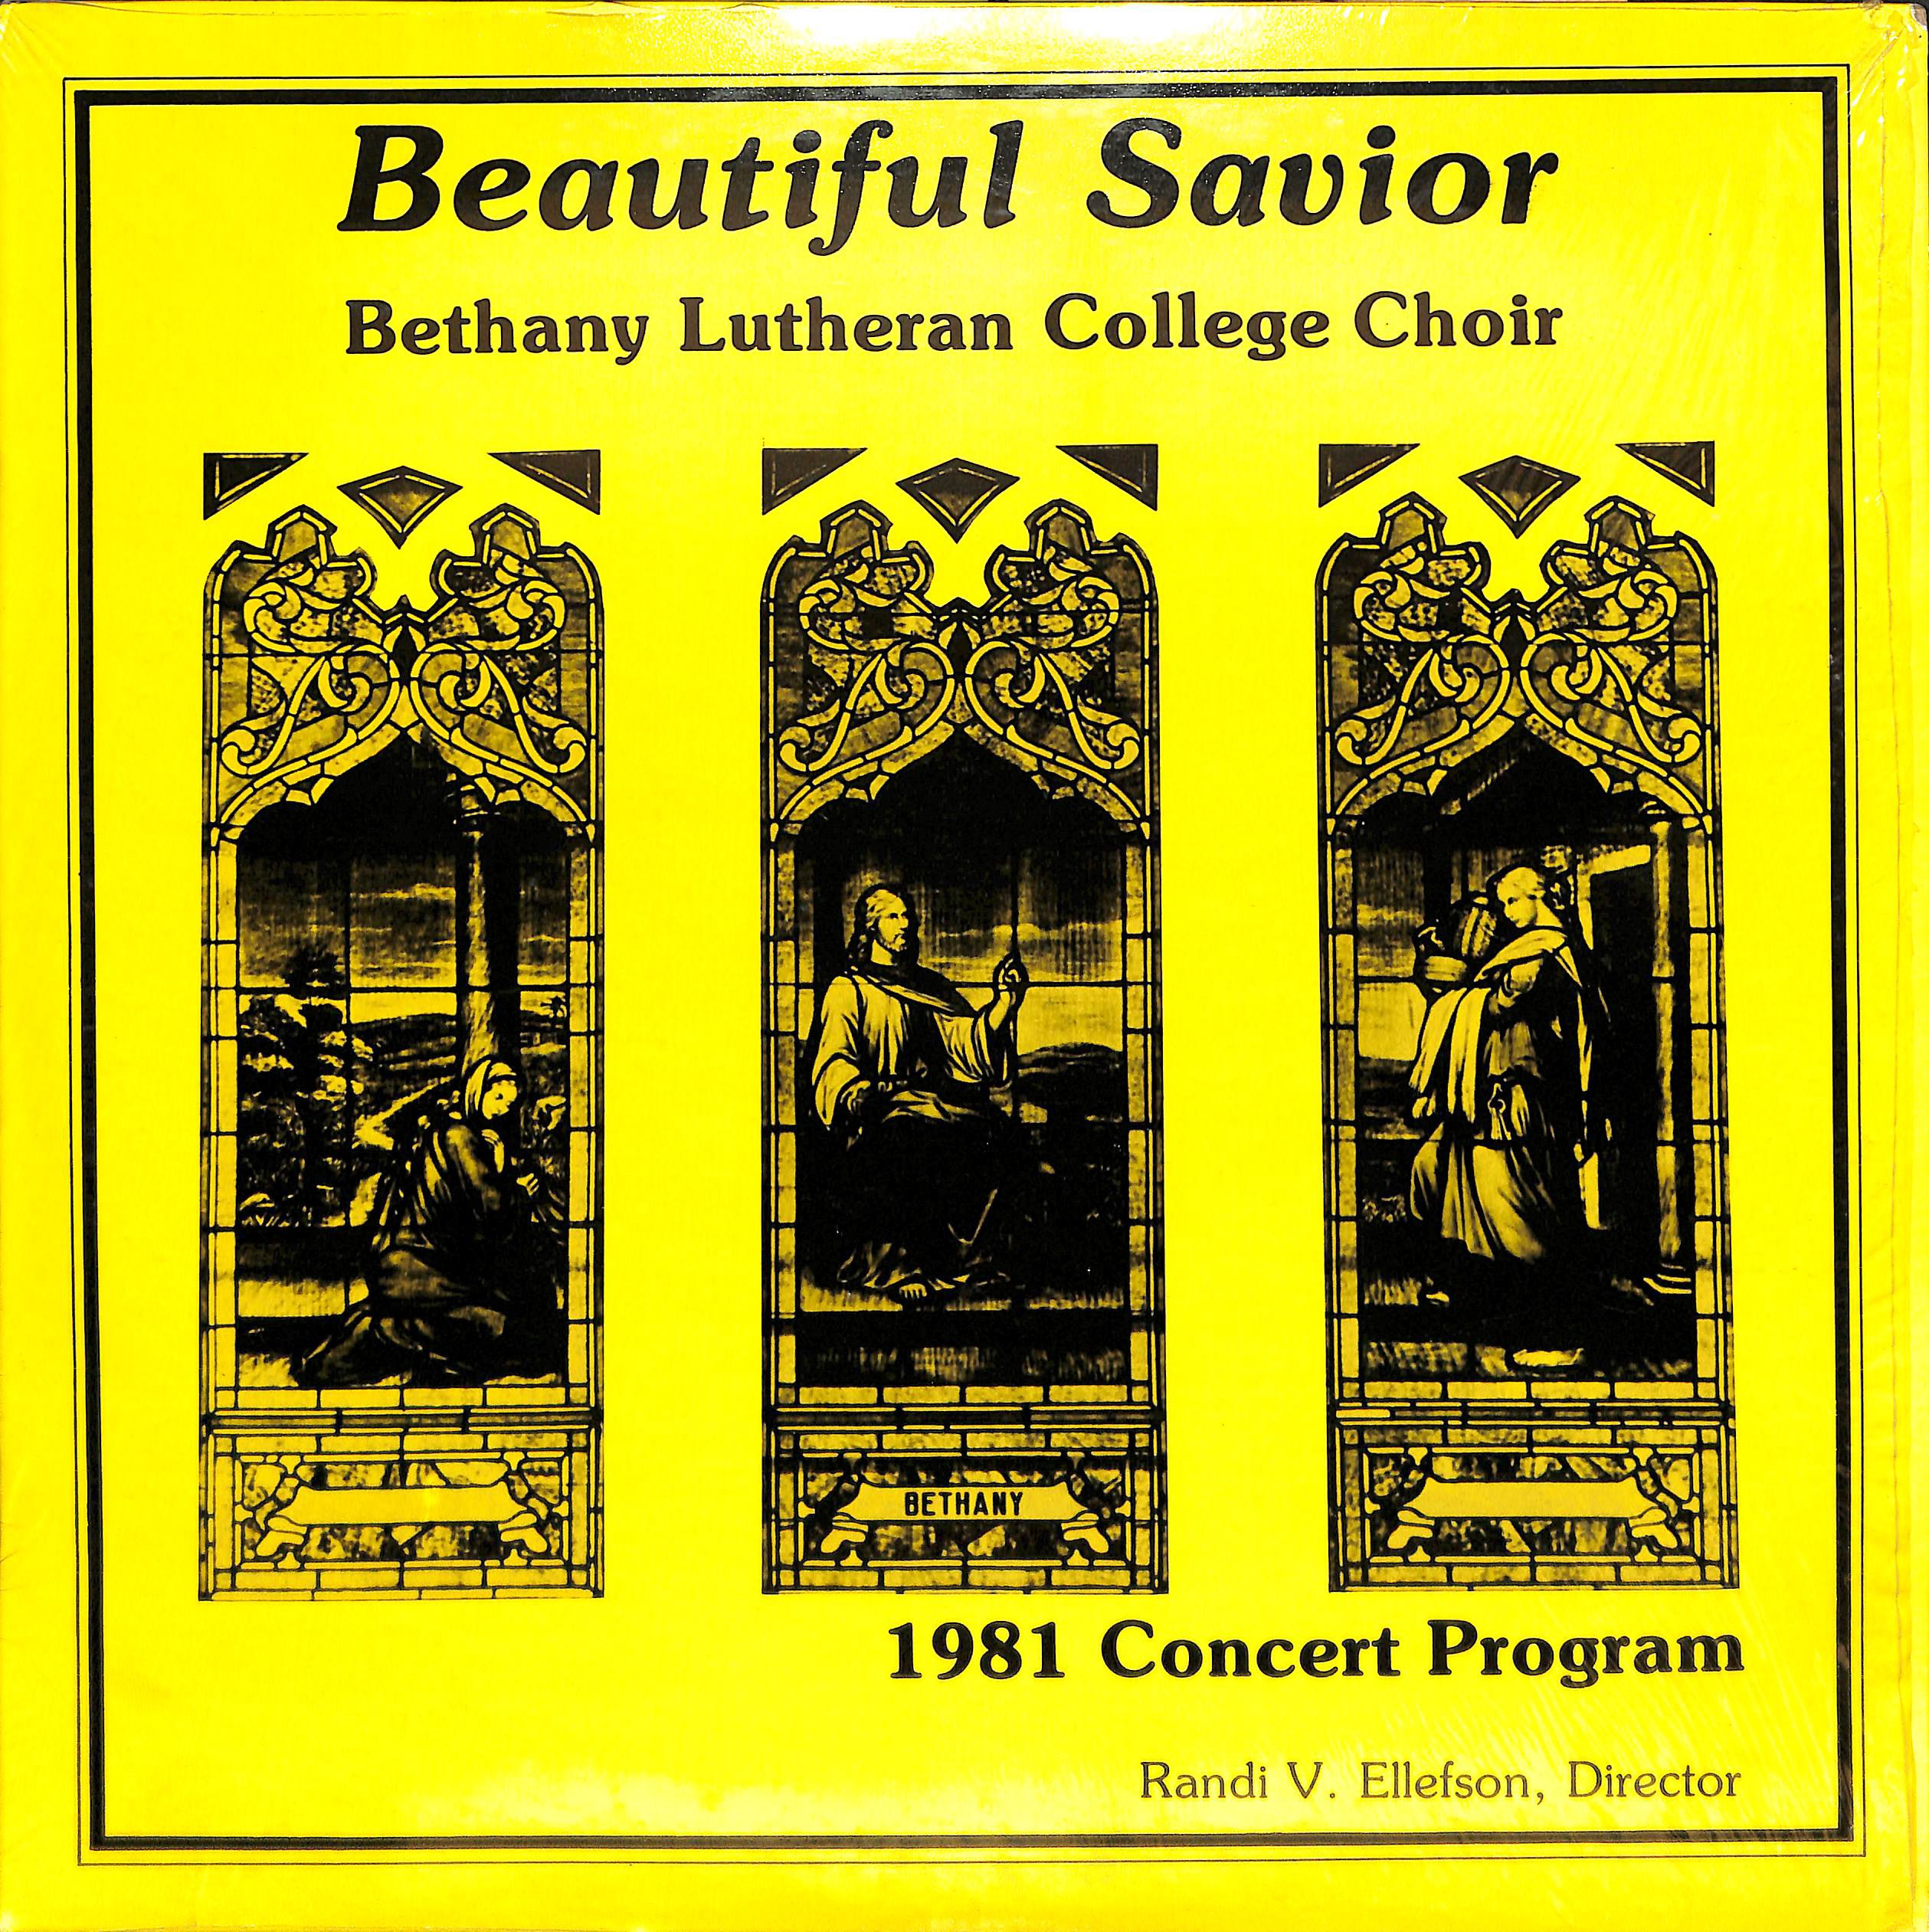 The Bethany Lutheran College Choir 1981: Beautiful Savior